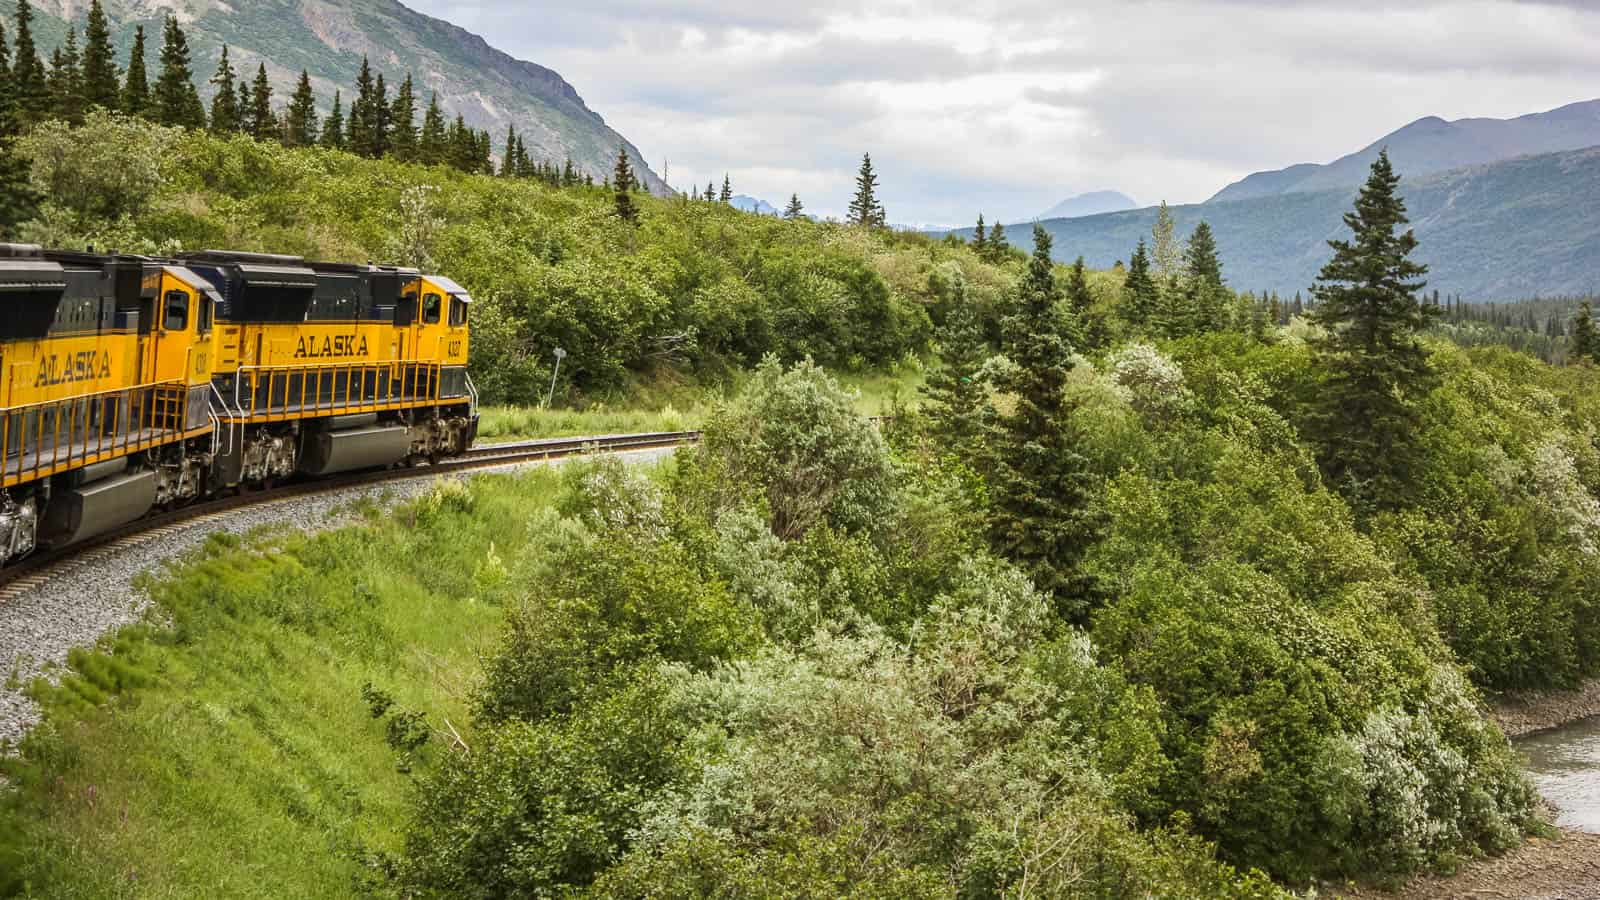 Train from Anchorage to Denali in Alaska